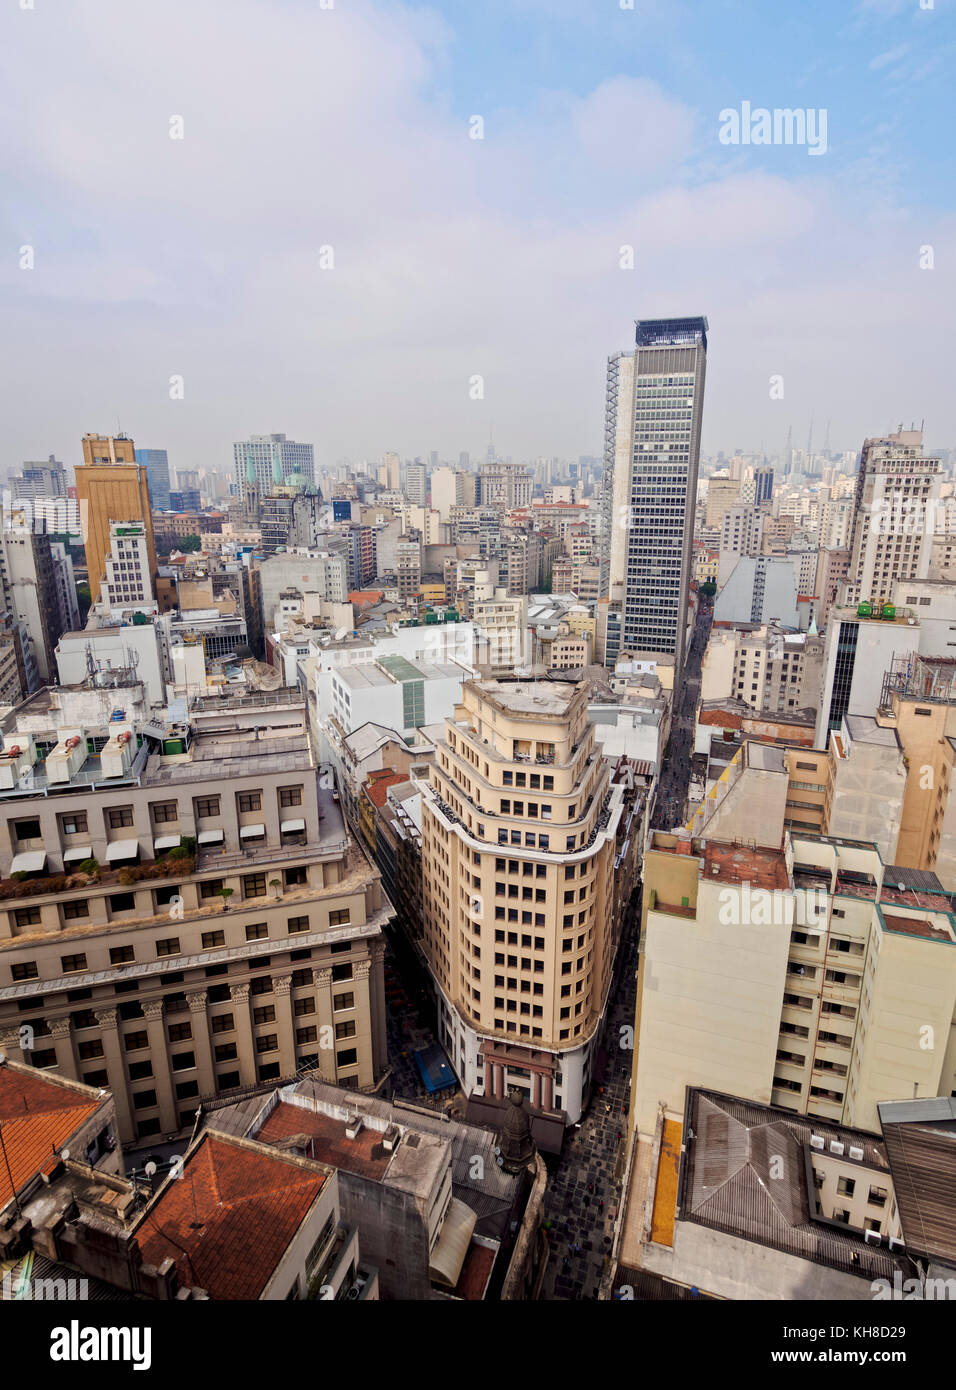 Cityscape, seen from the Martinelli Building, Sao Paulo, Brazil - Stock Image